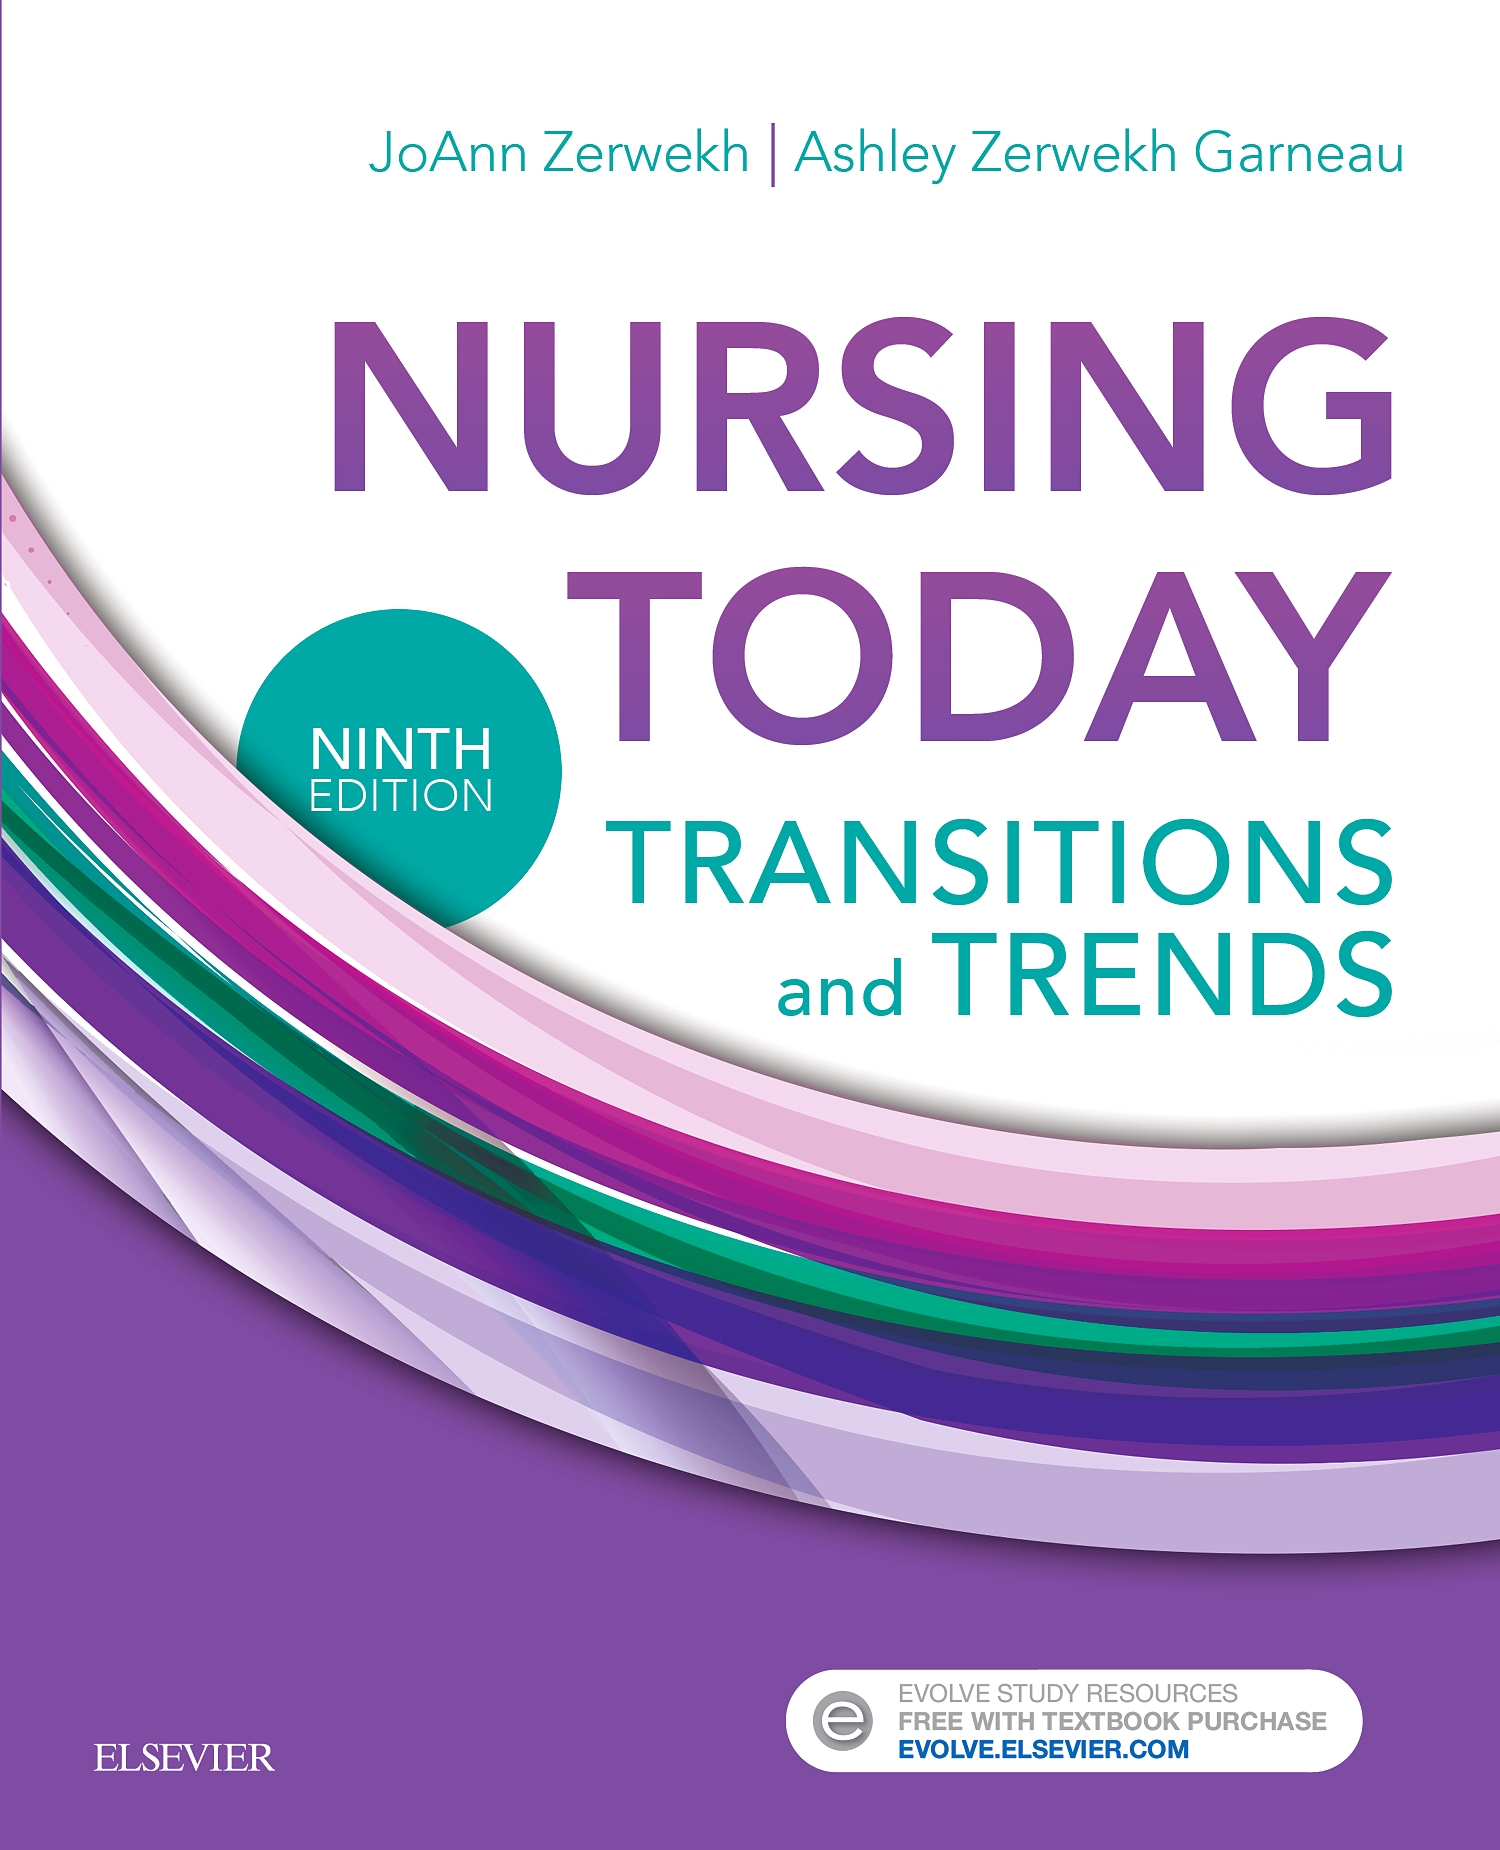 Evolve Resources for Nursing Today, 9th Edition